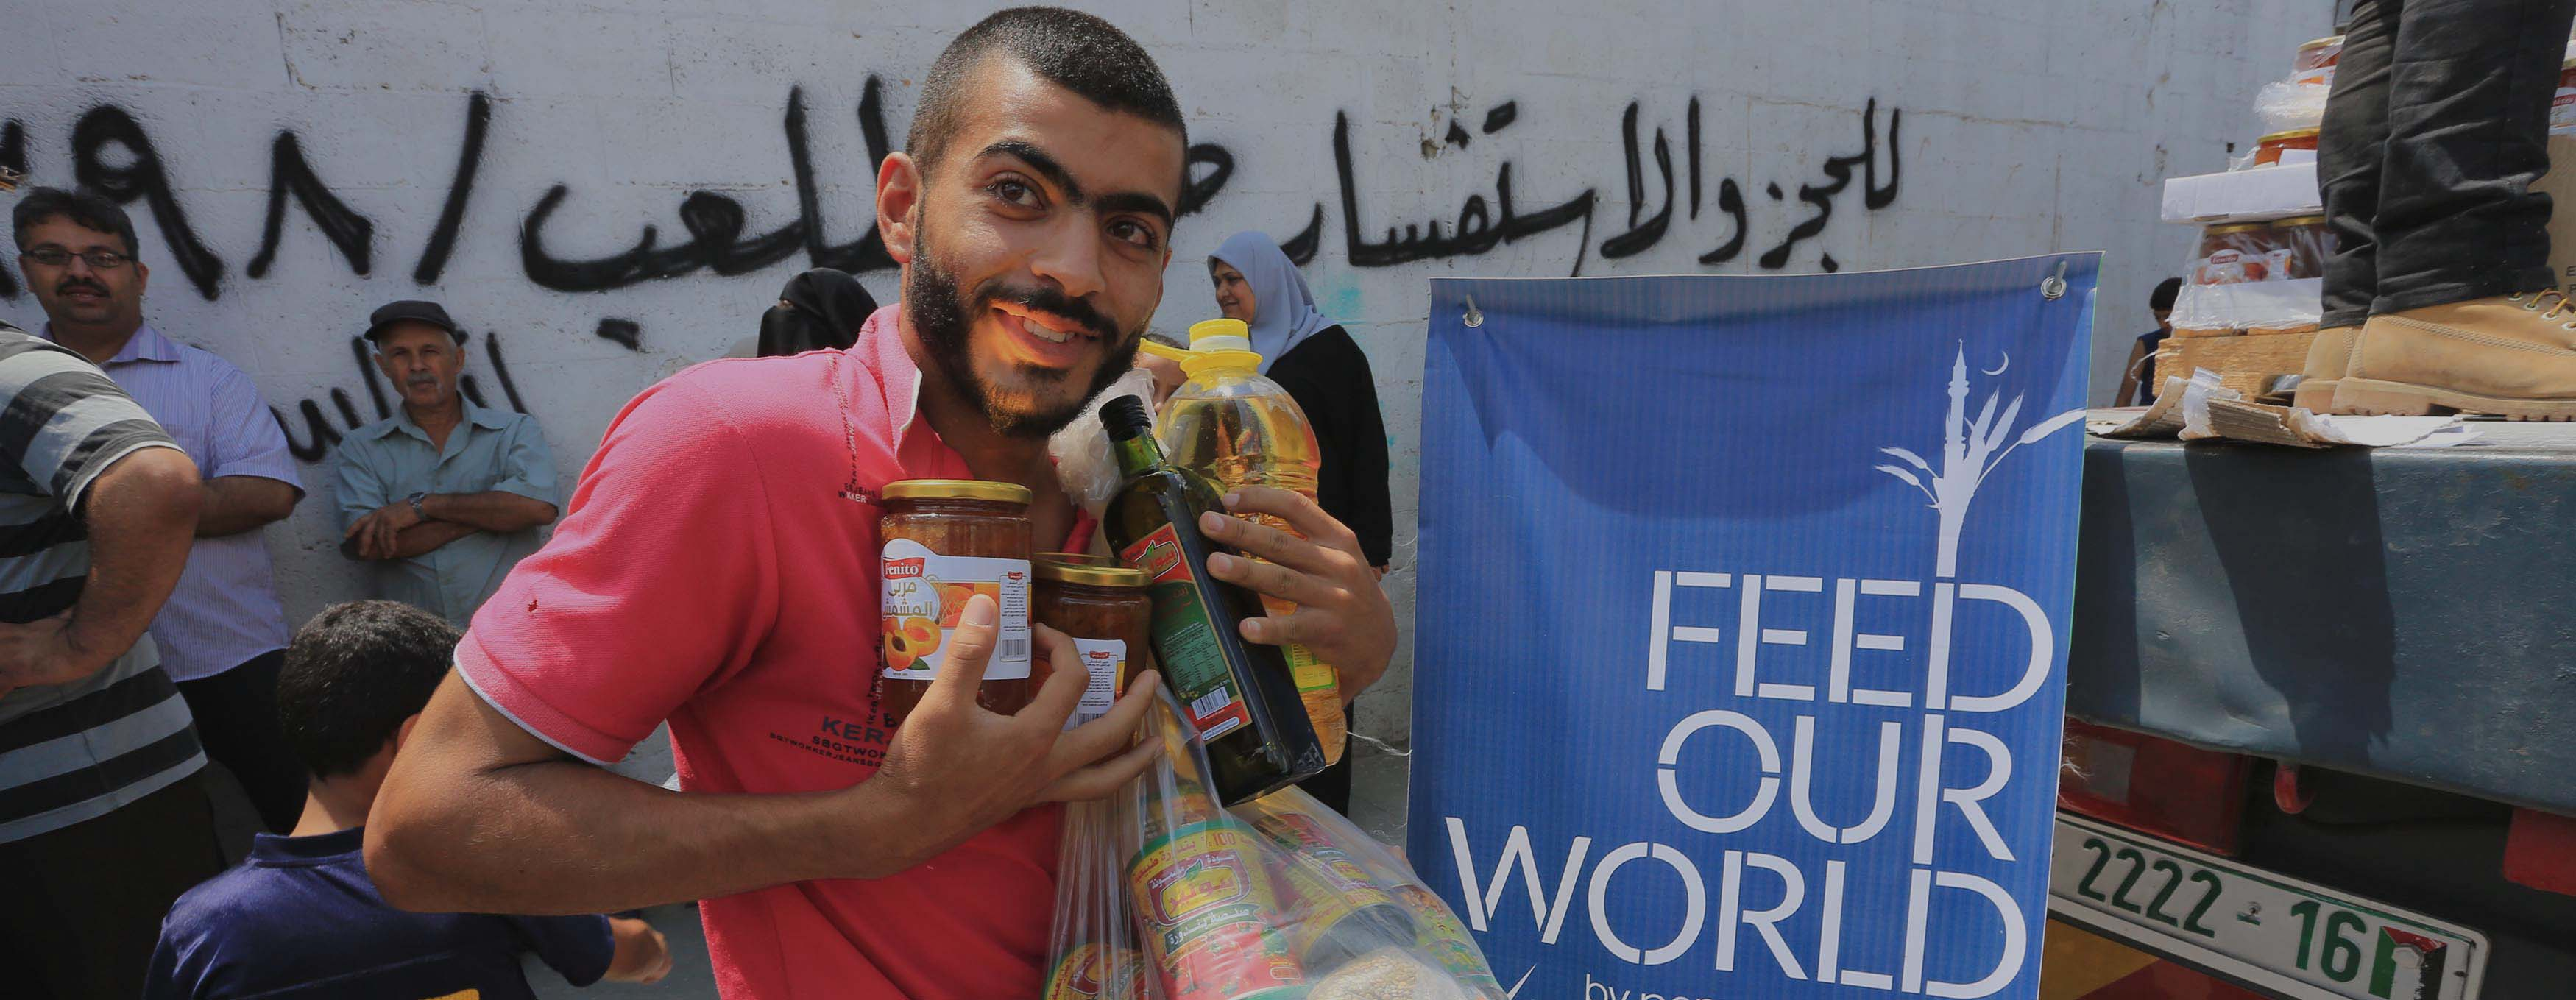 Palestinian with food provided by PennyAppeal